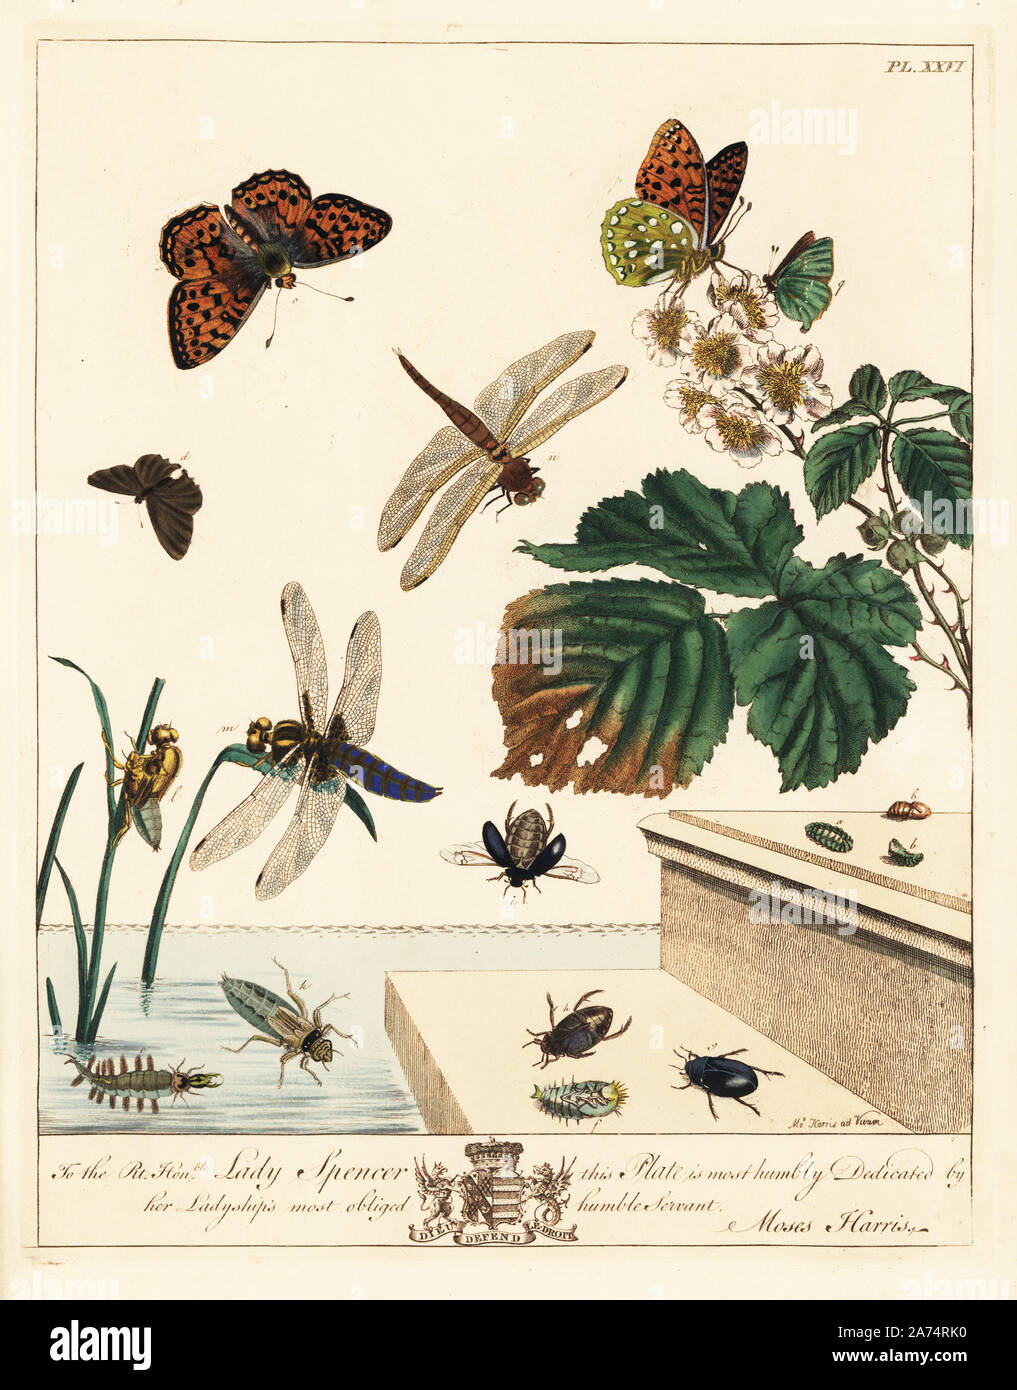 """Green hairstreak butterfly, Callophrys rubi, dark green fritillary, Argynnis aglaia, black oval or lesser silver water beetle, Hydrocharis caraboides, and flat blue-tailed dragonfly or broad-bodied chaser, Libellula depressa, on brambles, Rubus fruticosus. Handcoloured lithograph after an illustration by Moses Harris from """"The Aurelian; a Natural History of English Moths and Butterflies,"""" new edition edited by J. O. Westwood, published by Henry Bohn, London, 1840. Stock Photo"""